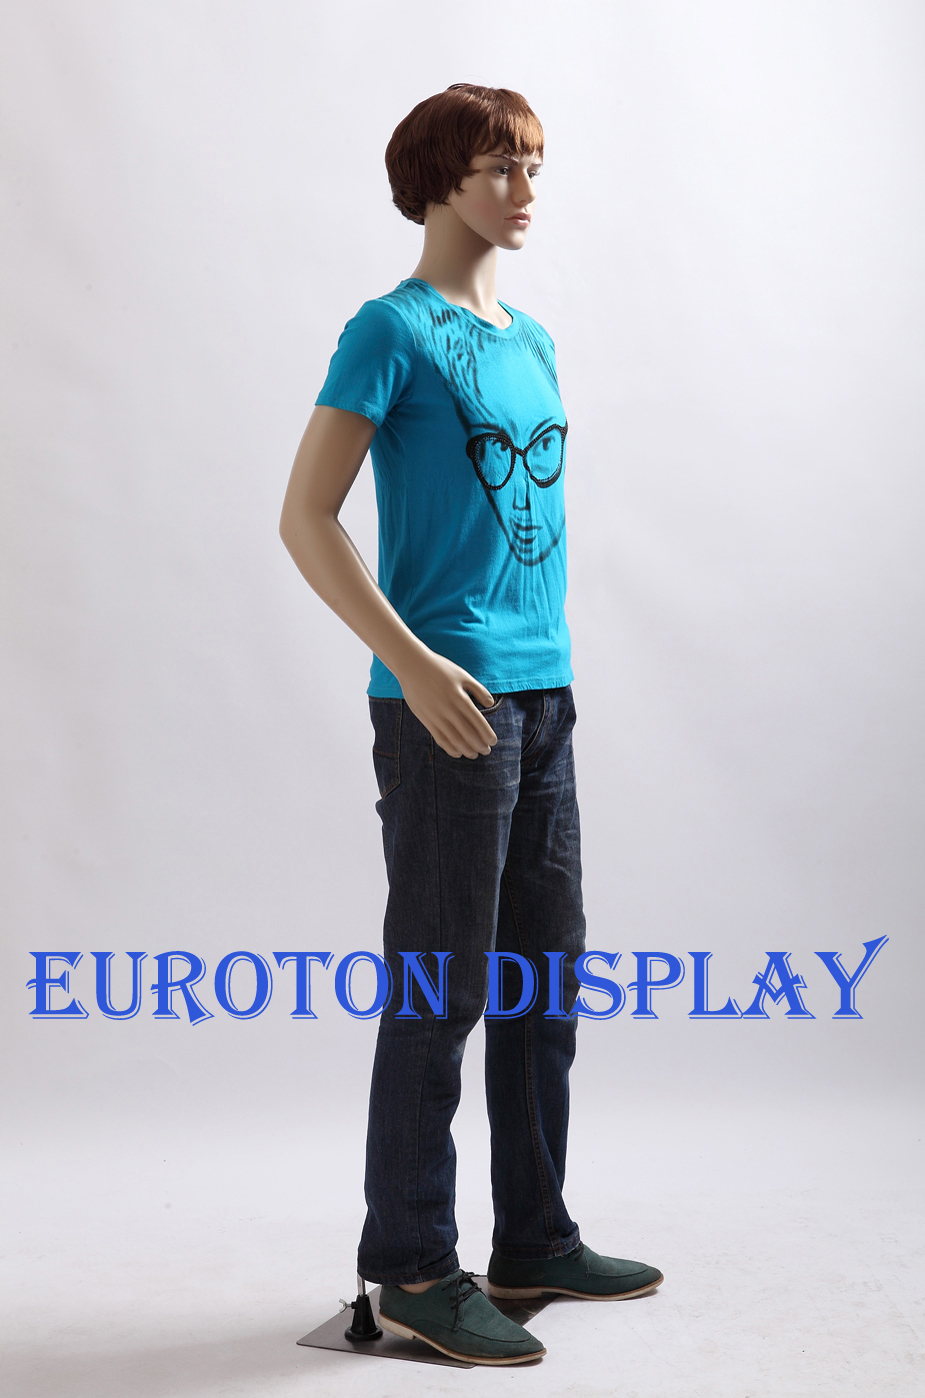 sm 1 eurotondisplay mannequin homme pe plastique mobile ebay. Black Bedroom Furniture Sets. Home Design Ideas